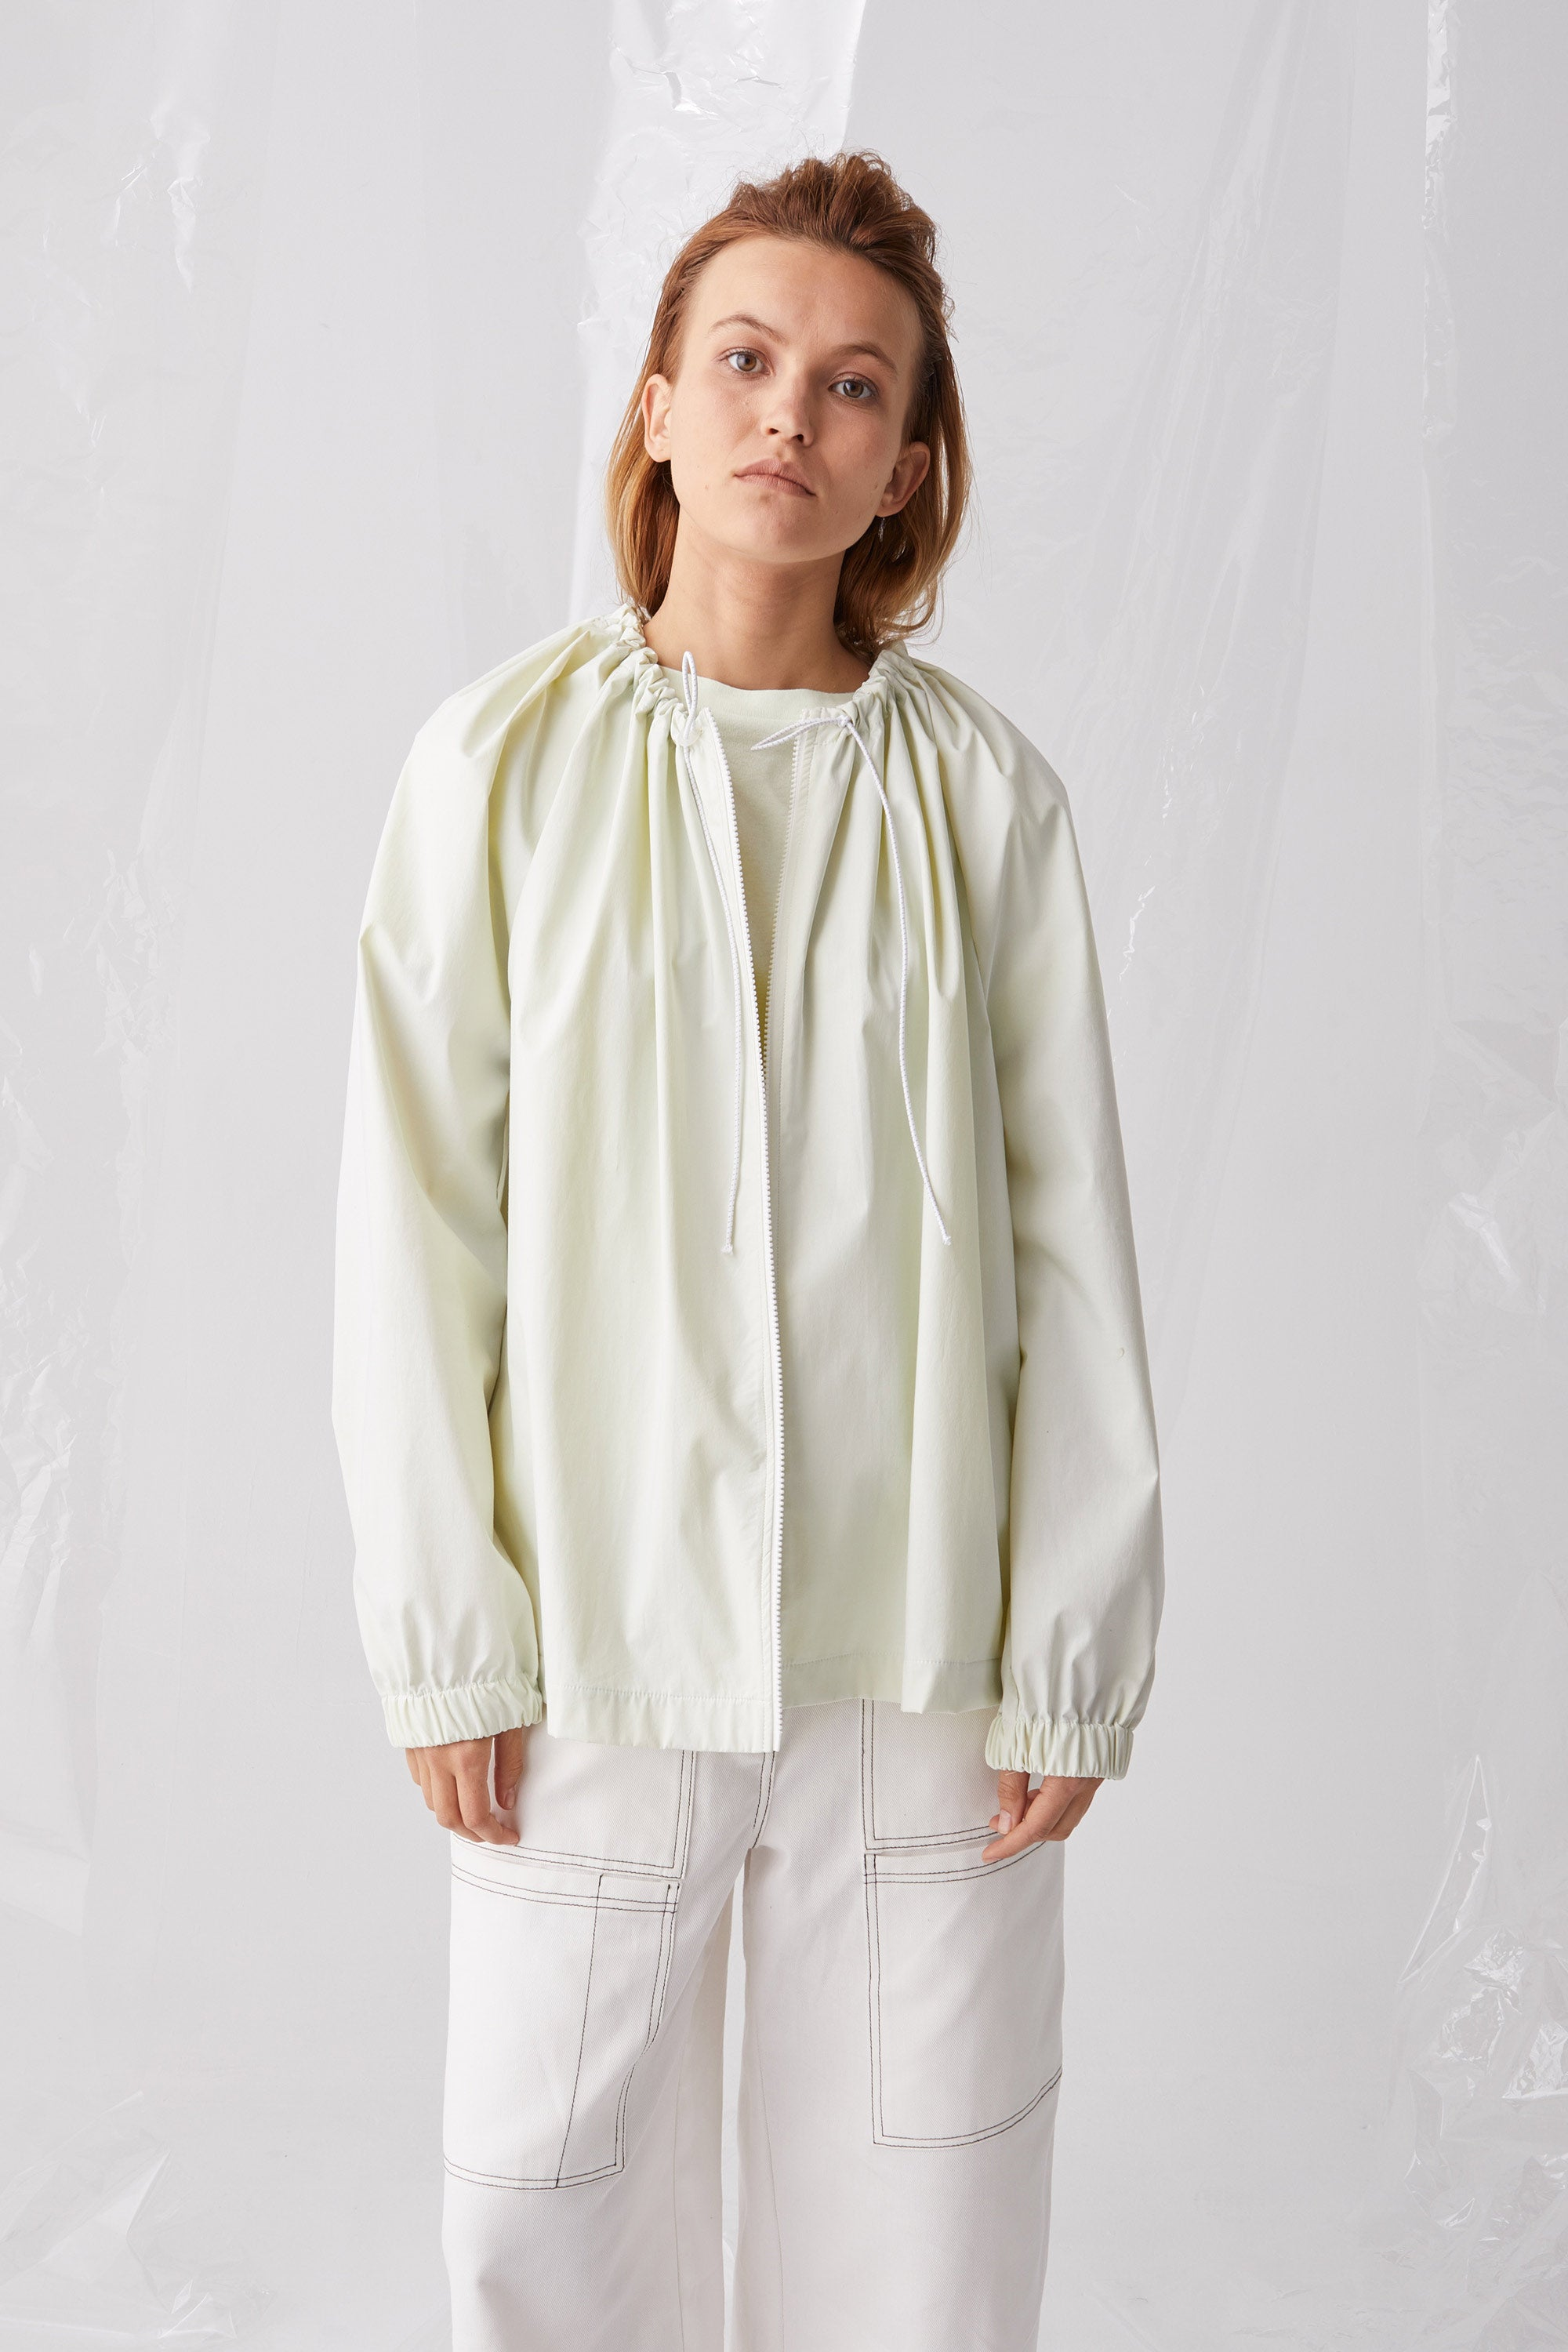 Ricochet NZ Fashion Designer Clothing Boutique SS18 Kanon Jacket Glow Made in NZ